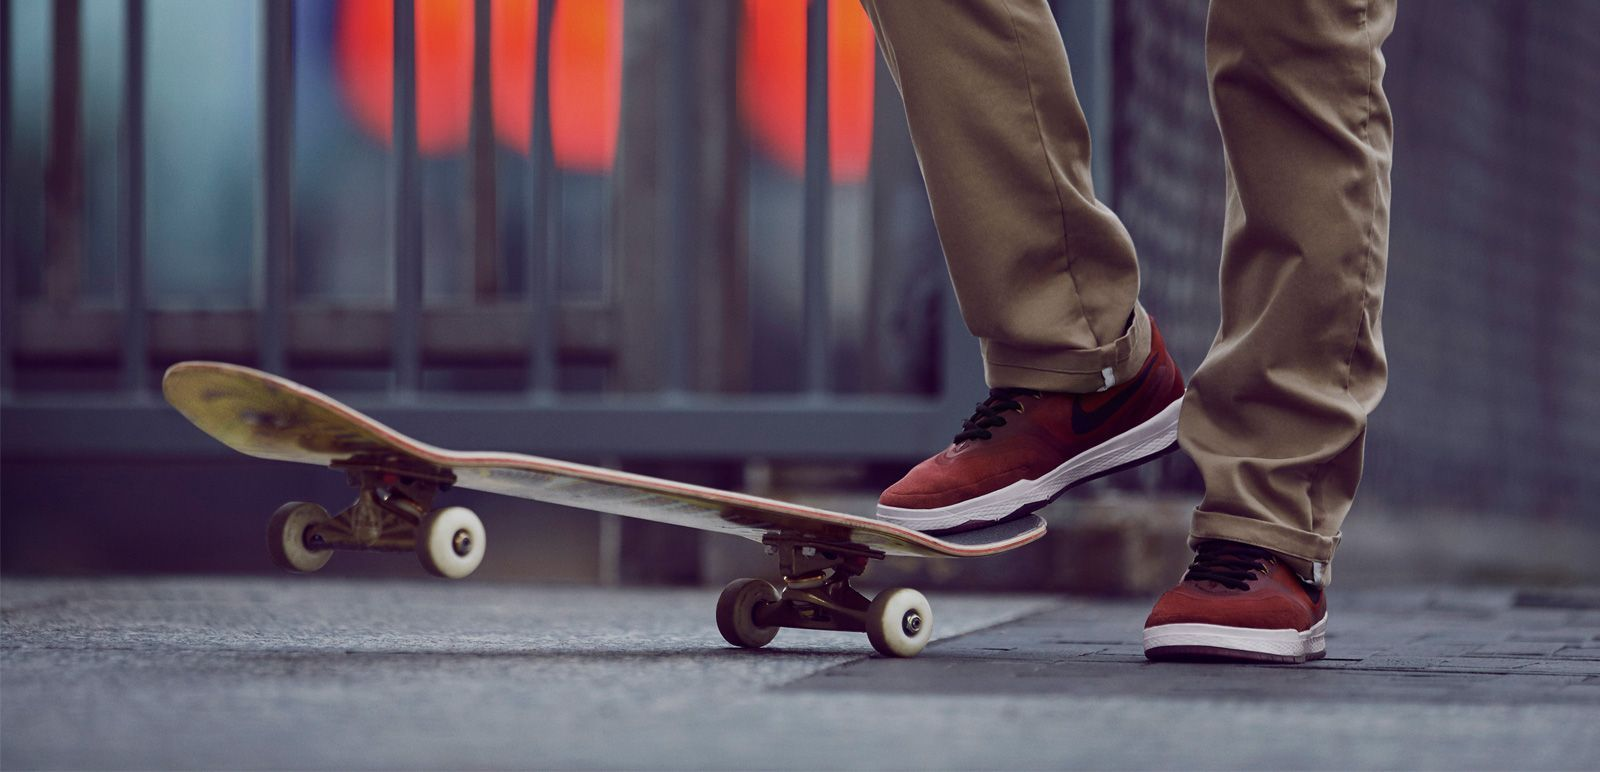 Nike SB skate shoes are made with innovative technology to provide skaters with the best possible boardfeel. The Nike SB P-Rod 9 can be seen here.